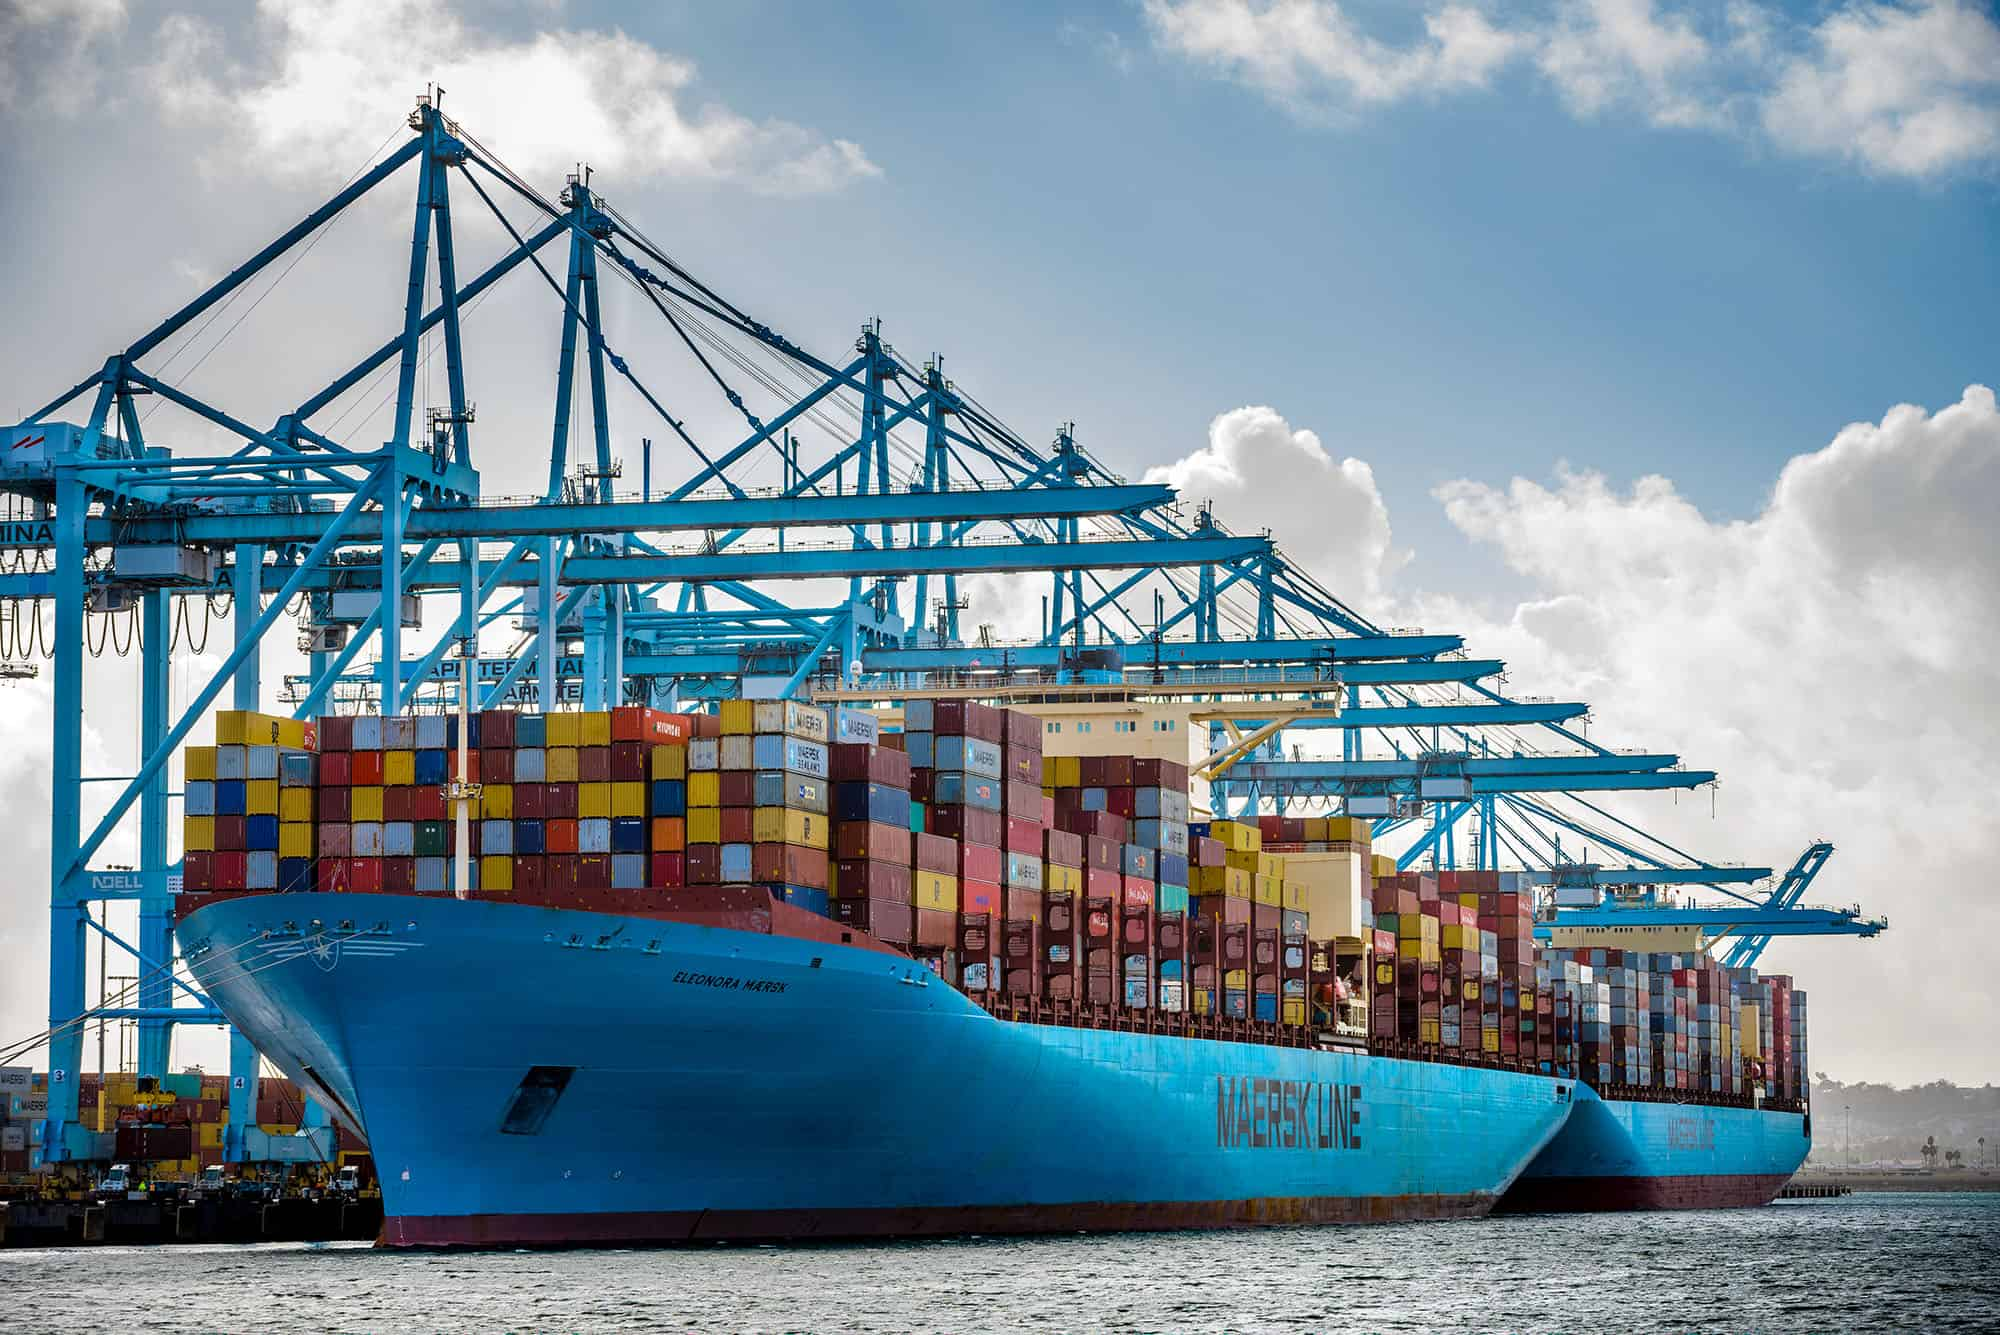 Maersk suspends 2020 earnings guidance due to COVID-19